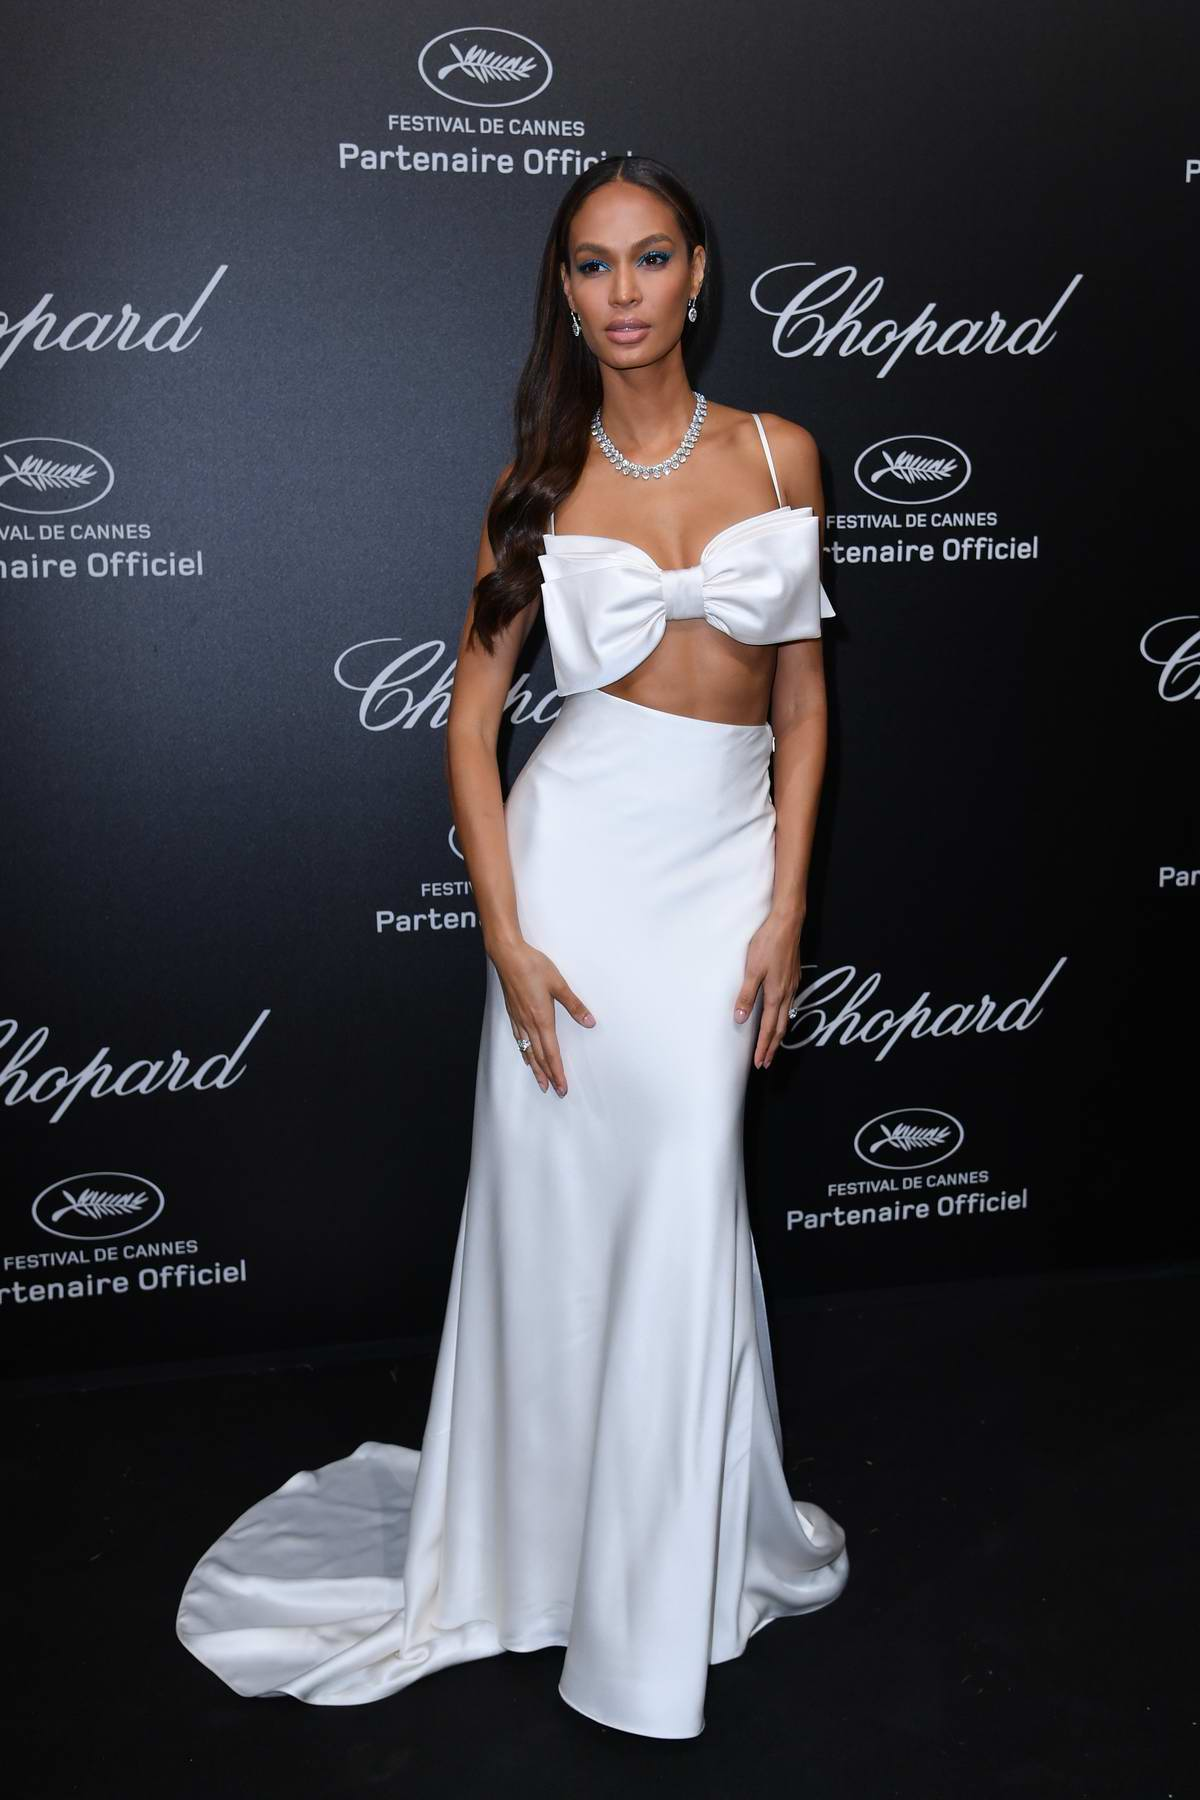 Joan Smalls attends Secret Chopard party during the 71st Cannes Film Festival in Cannes, France